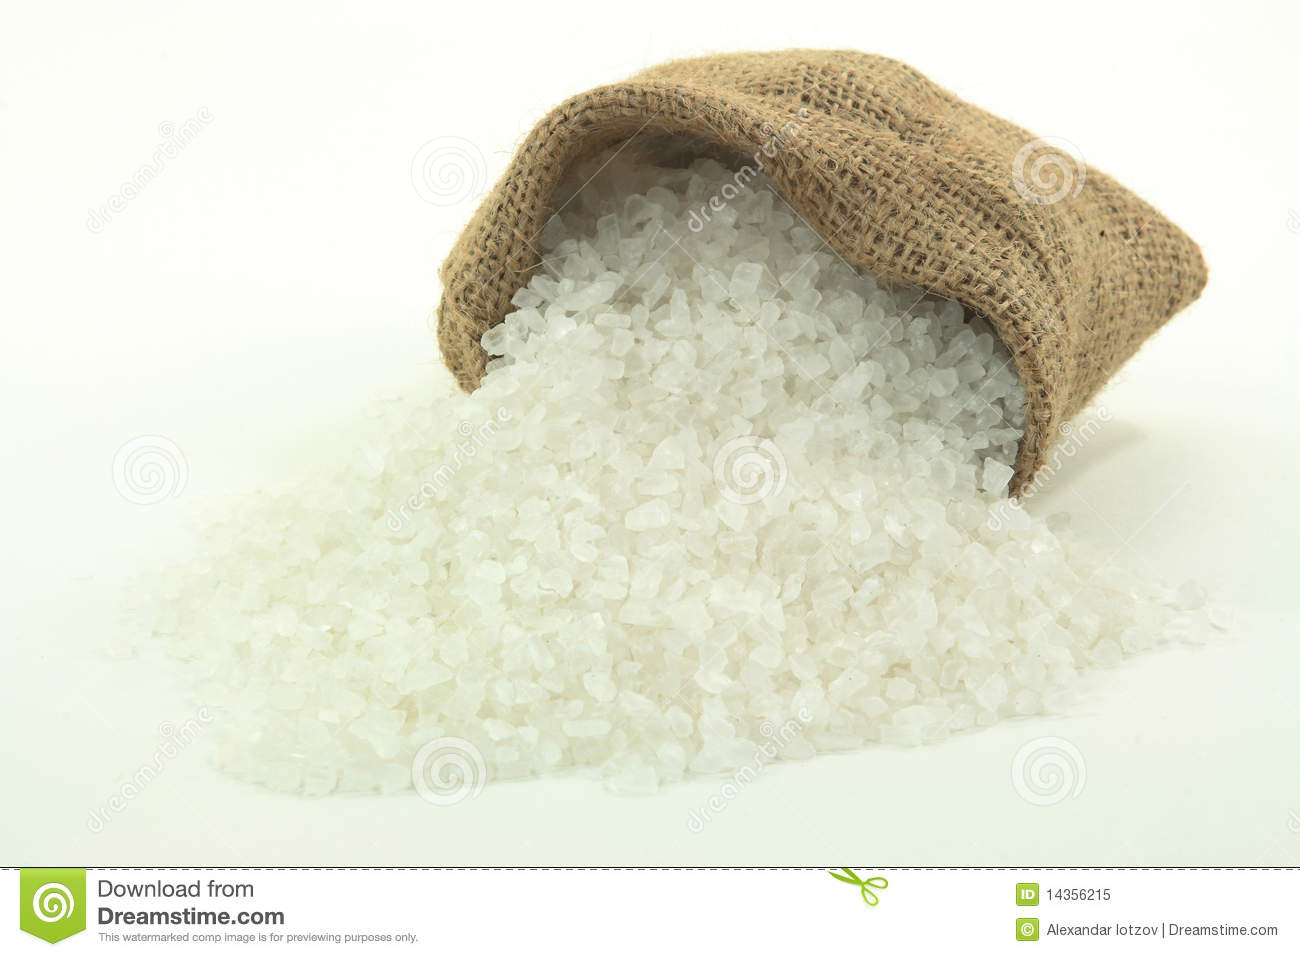 Picture Of Spilled Rock Crushed Salt From Burlap Sack Over White